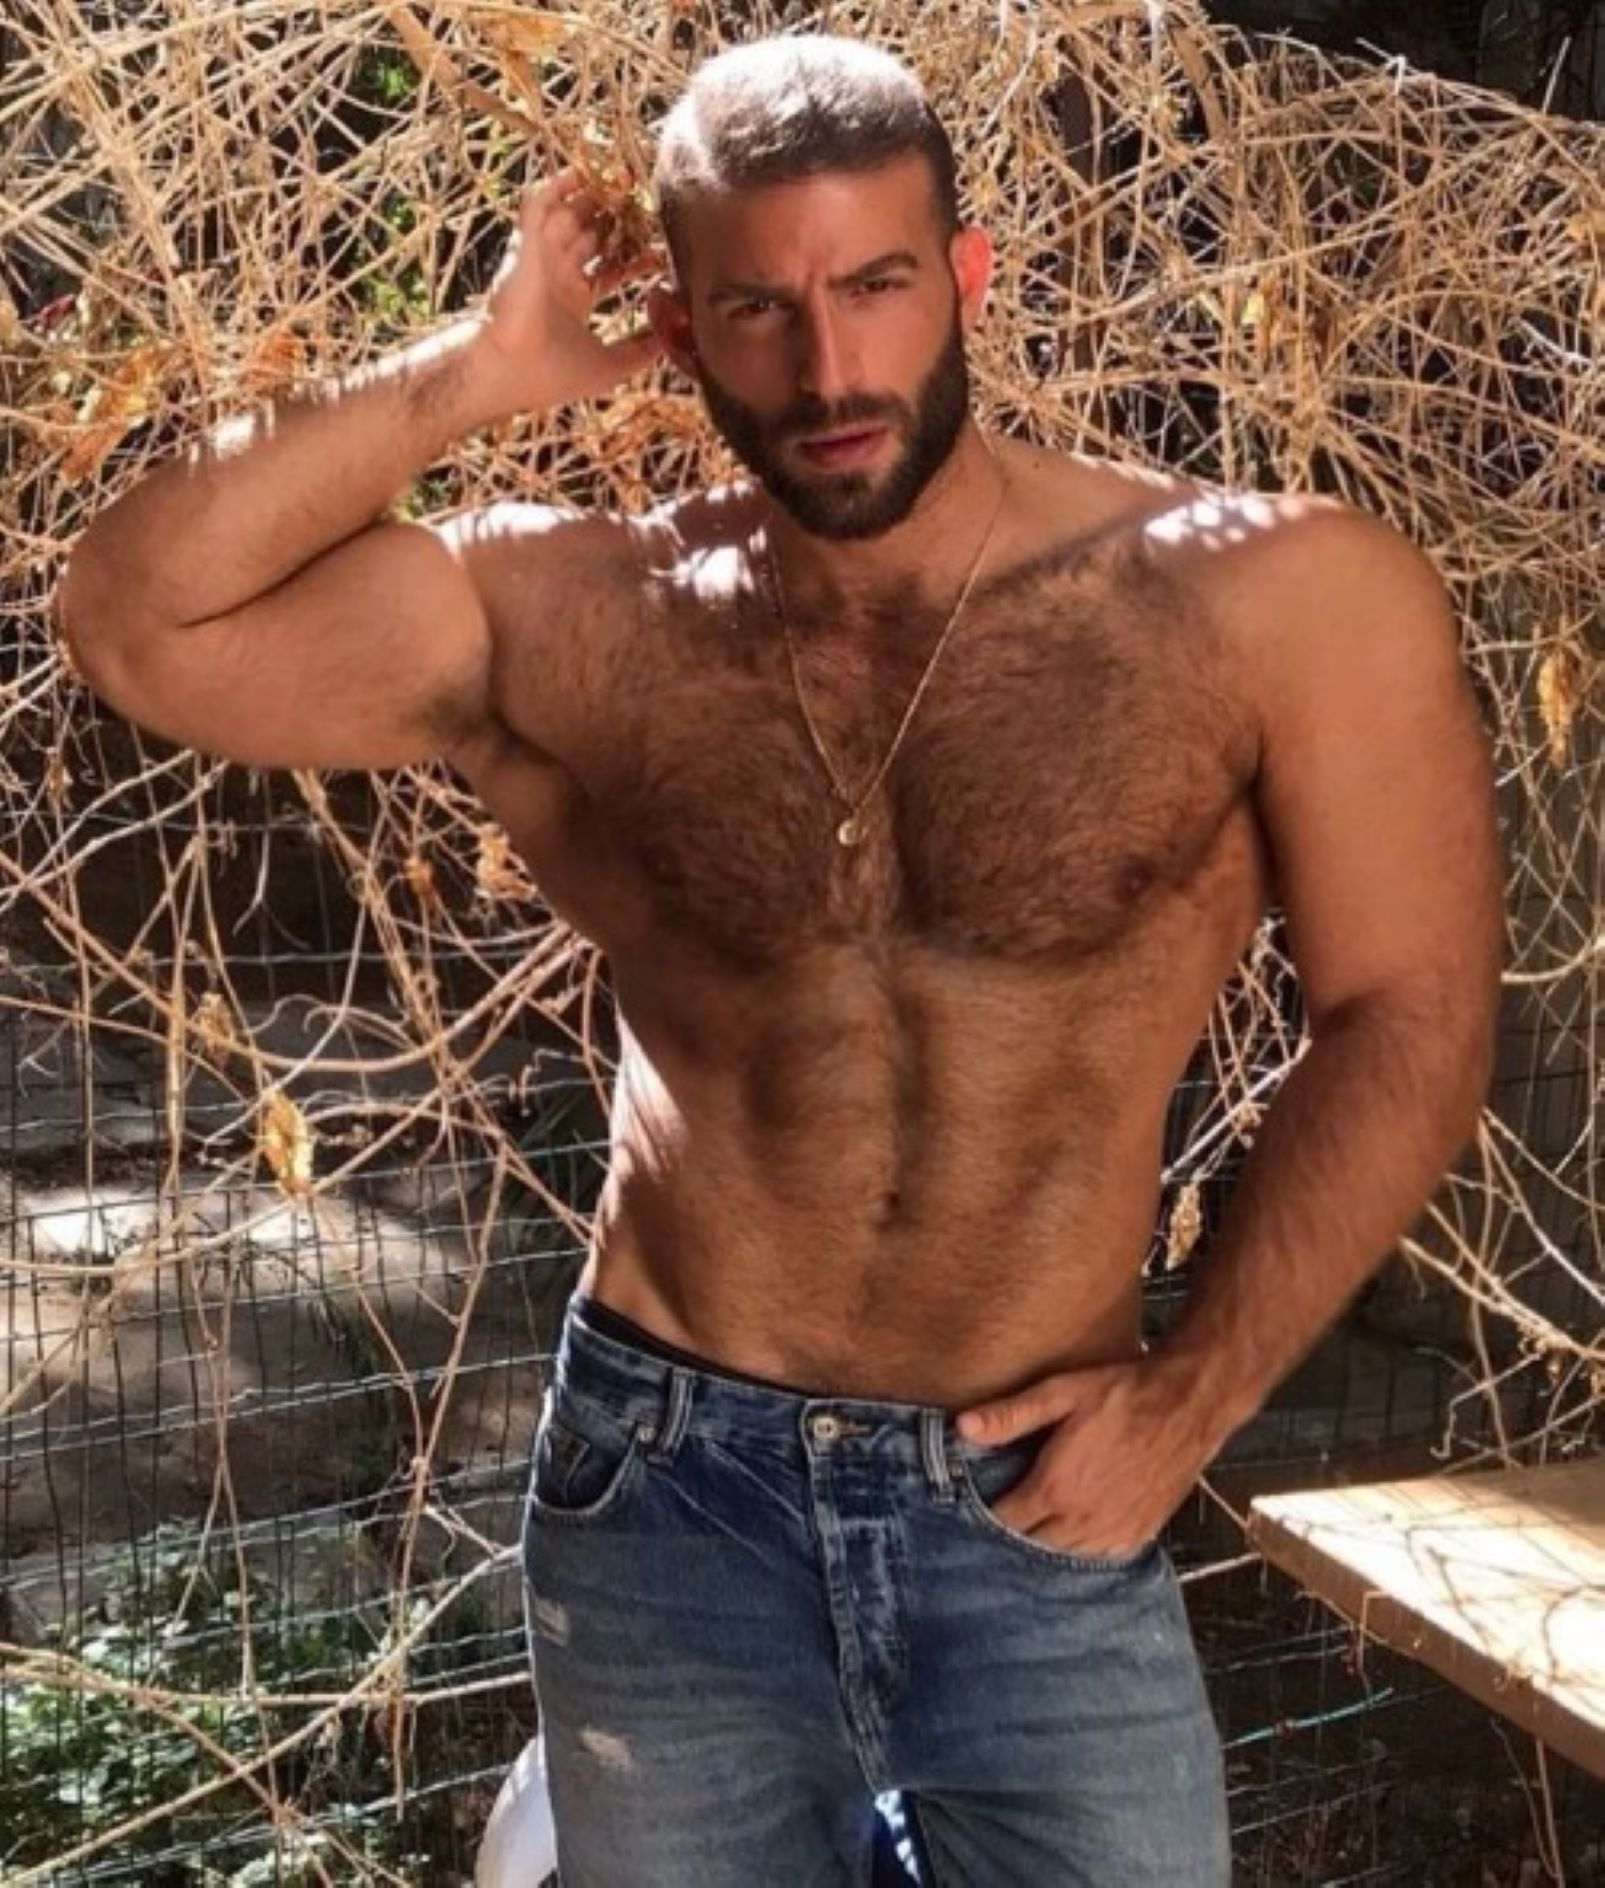 Pin by 胡勤 on 1 Western Muscle in 2020 | Hairy chested men